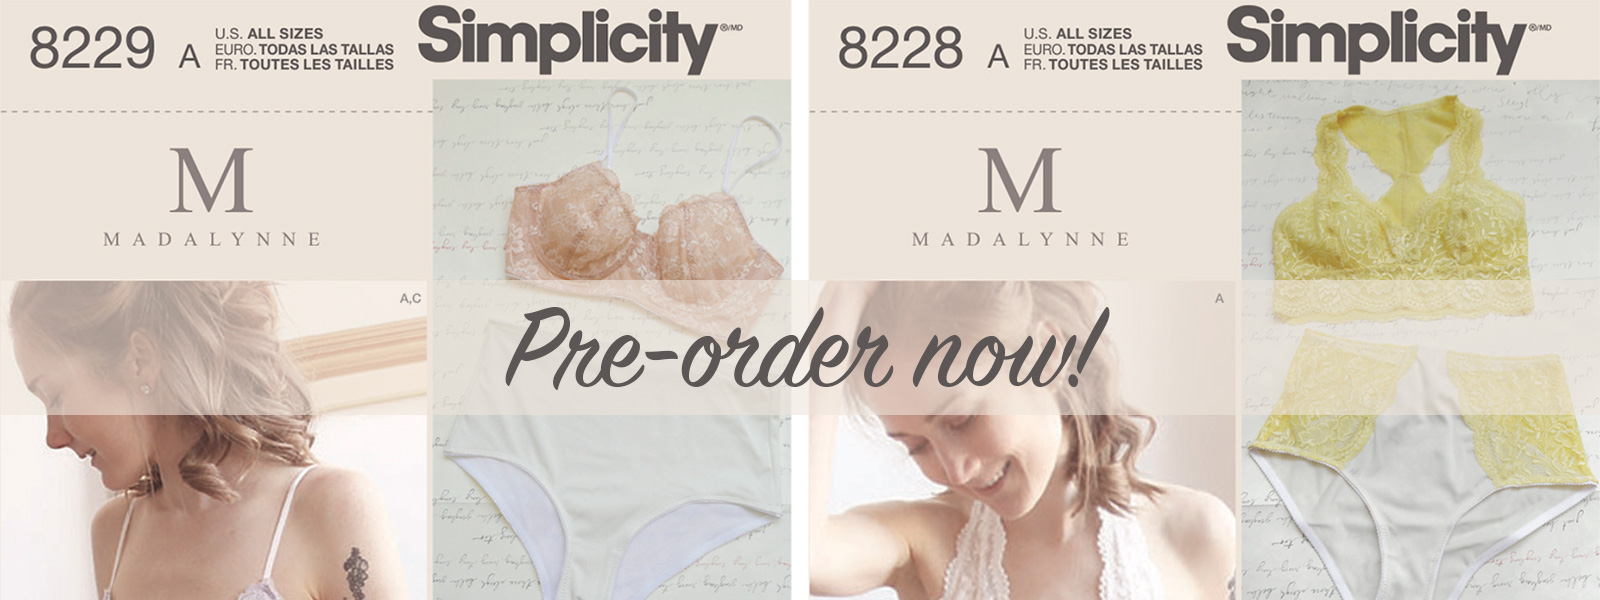 preorder-simplicity x madalynne bra patterns